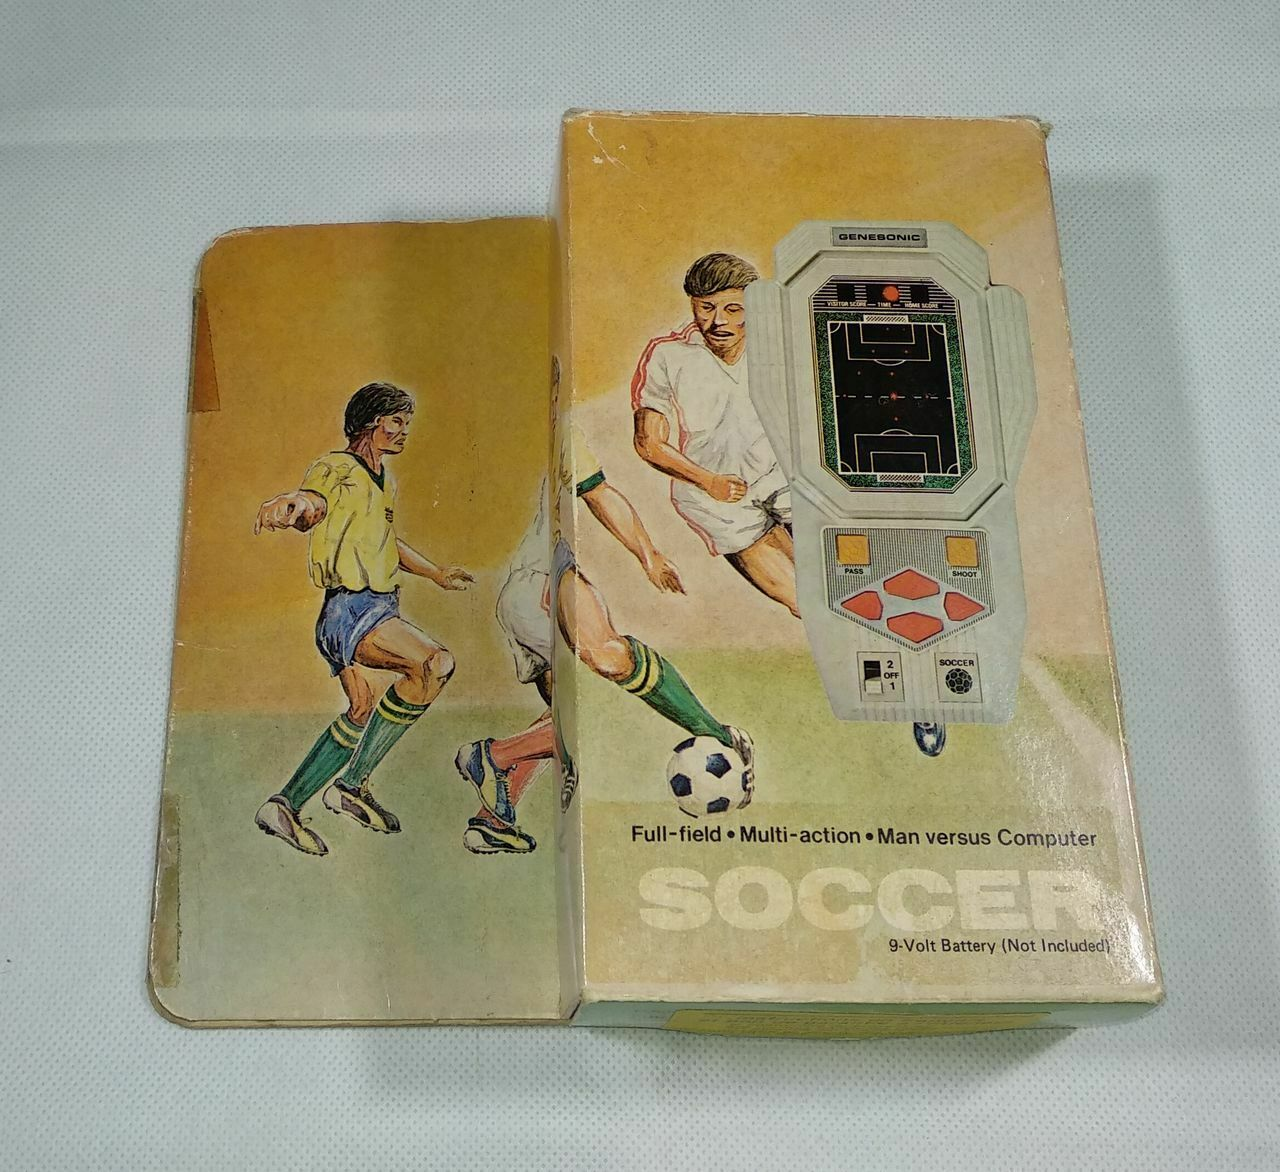 GENESONIC SOCCER - Jeu Electronique   Electronic spel LSI   Tablettop 1980'' {65533;;;\_